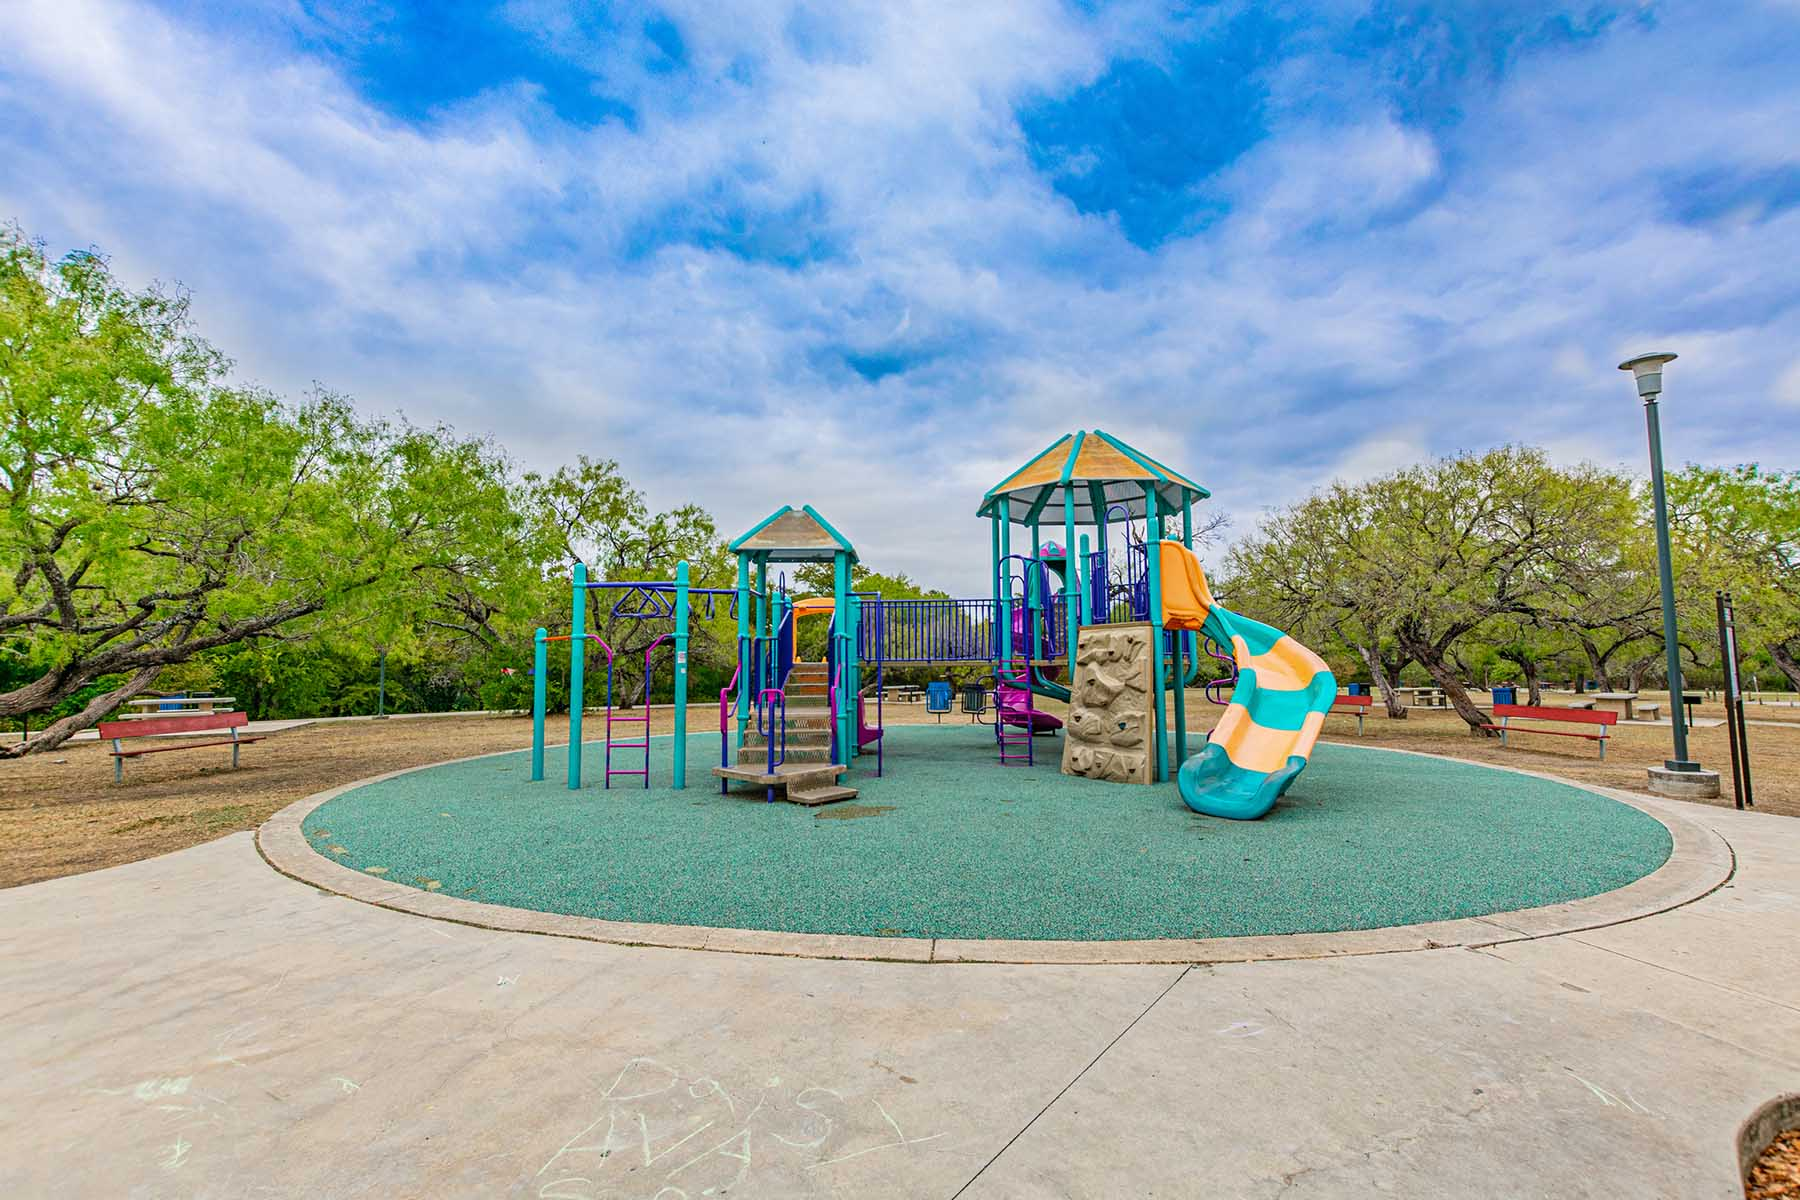 Republic Creek Playground